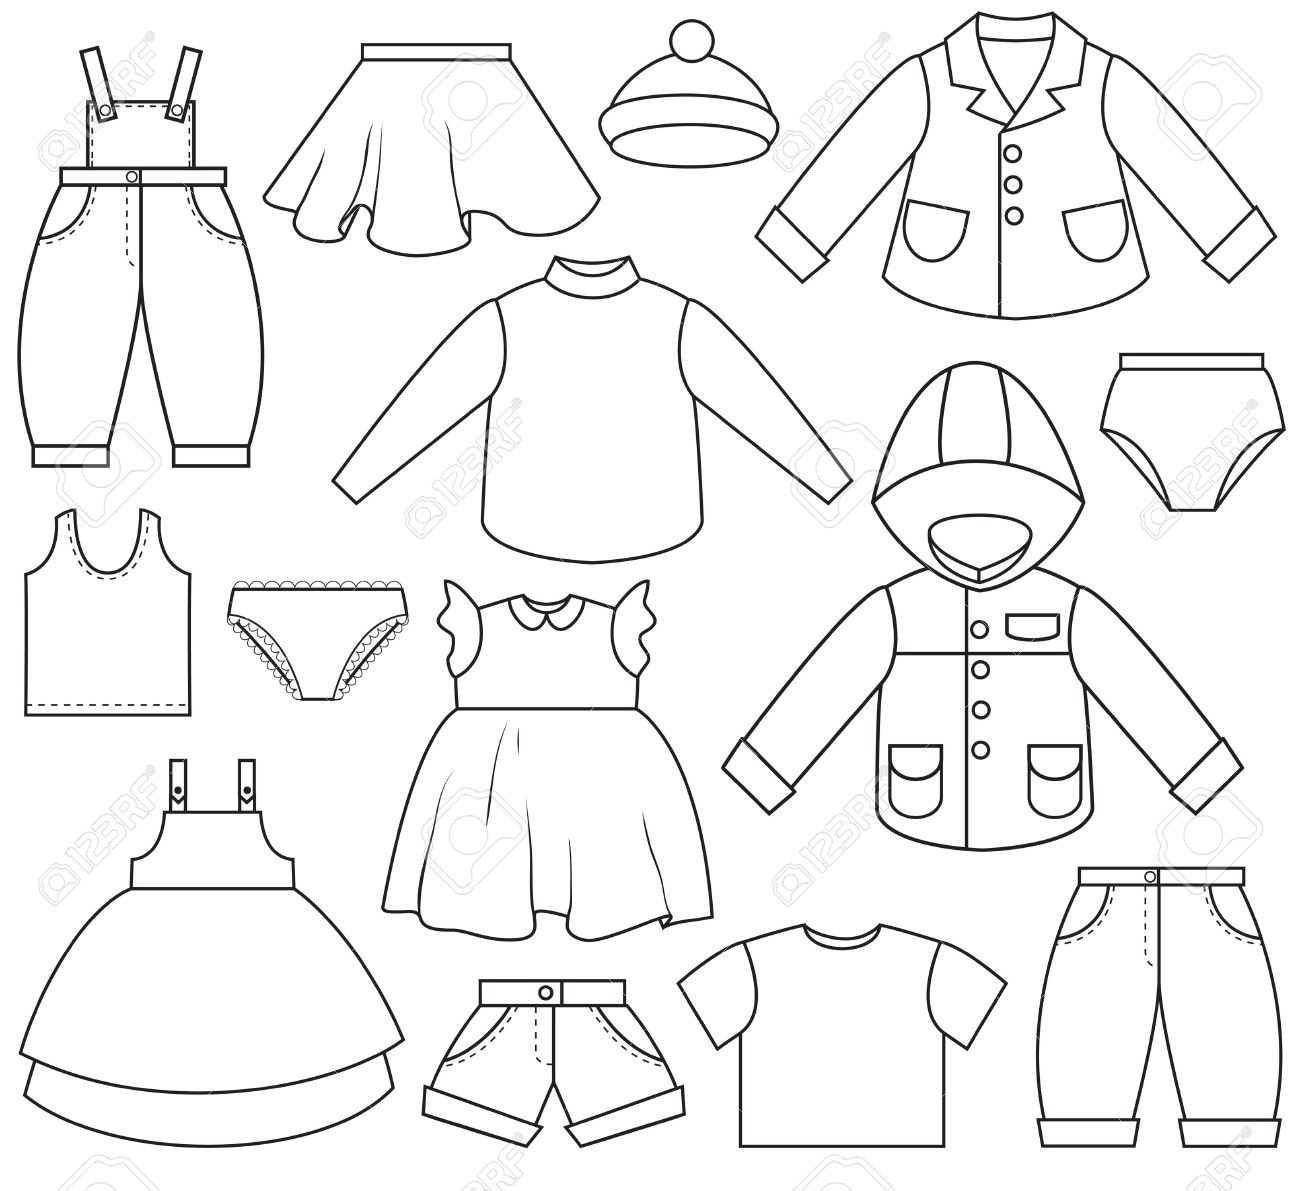 A Set Of Different Types Of Clothing Kids Outfits Coloring Pages Winter Coloring Pages